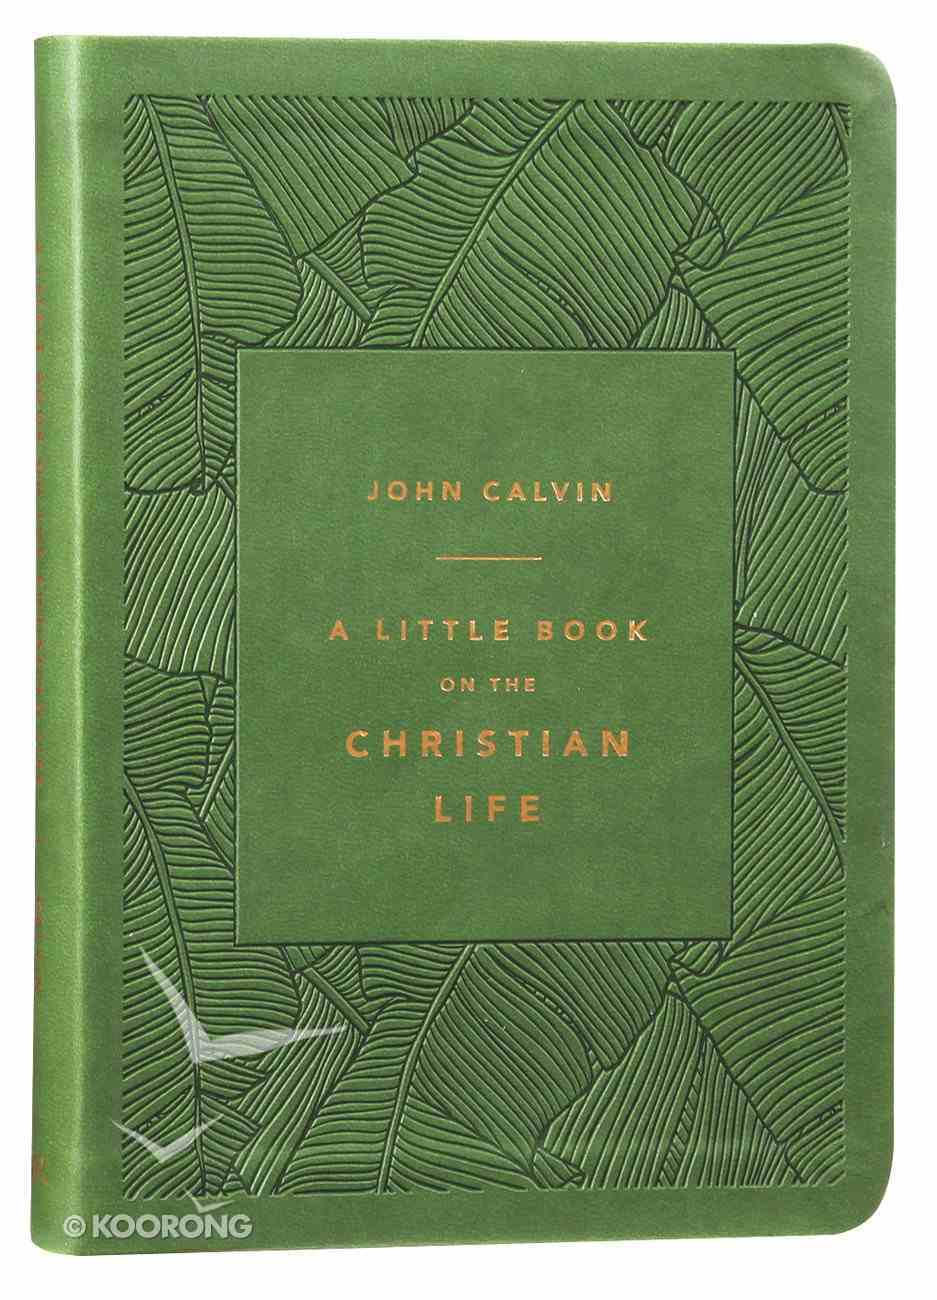 A Little Book on the Christian Life (Olive Gift Edition) Imitation Leather